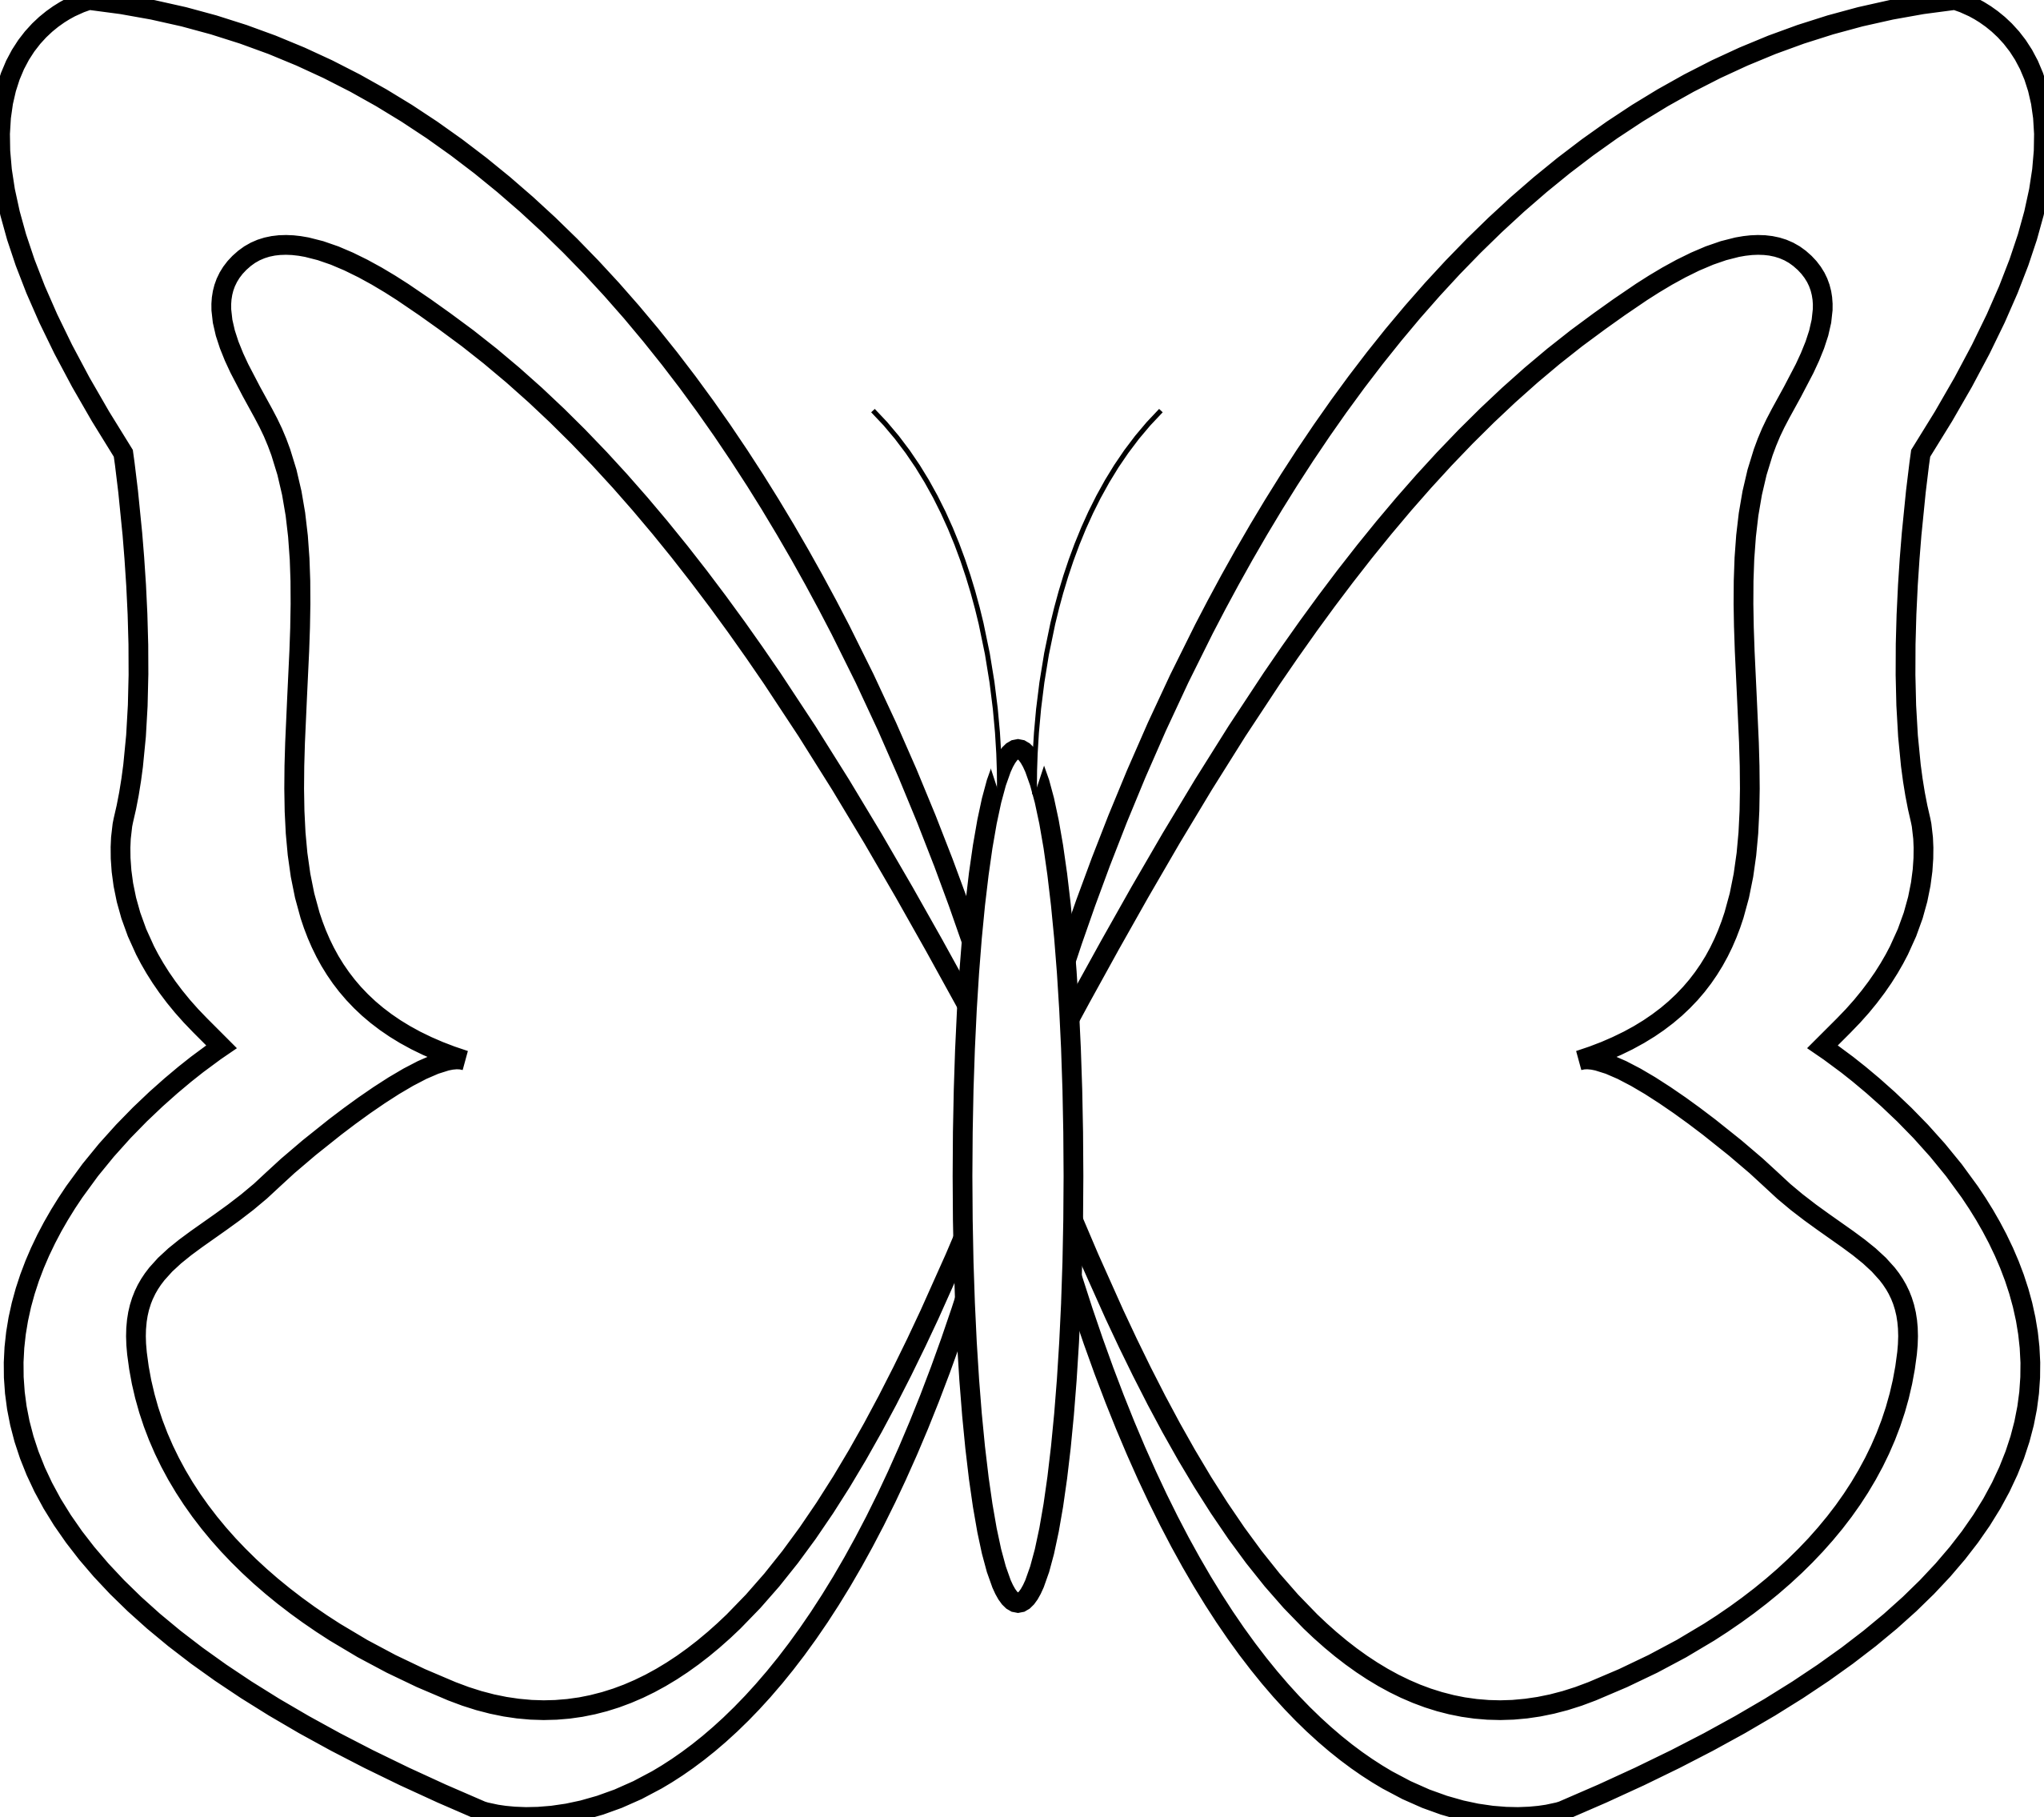 coloring outline butterfly butterfly outline clipart free download on clipartmag outline coloring butterfly